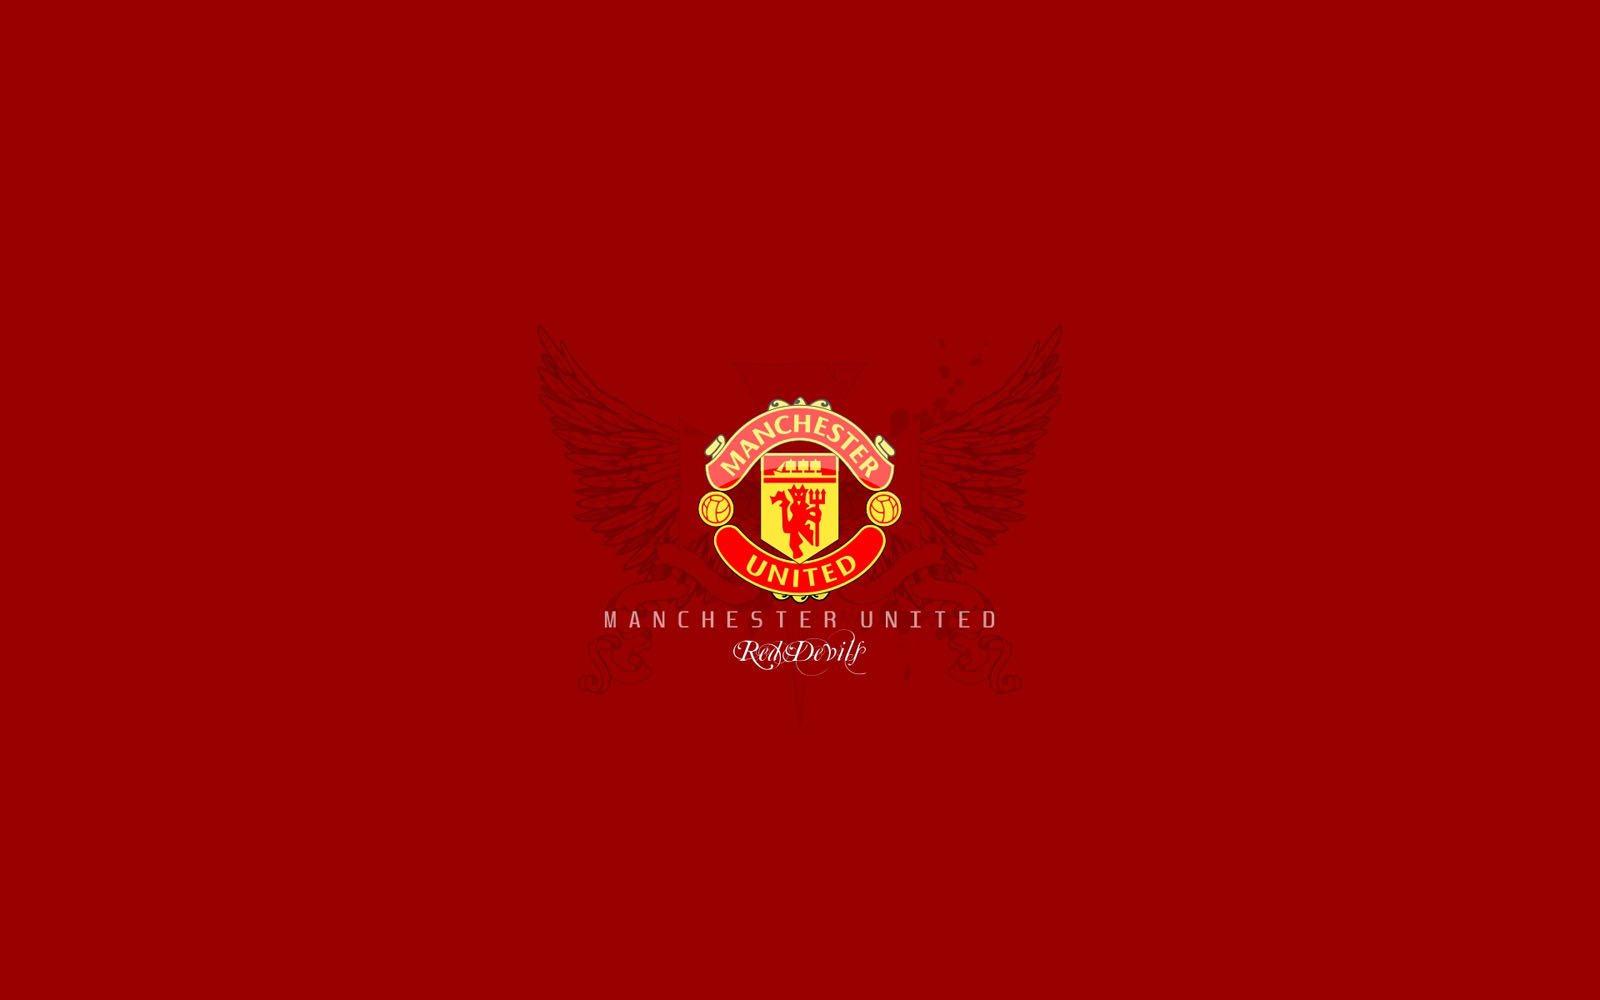 Manchester united 2013 red devils logo england hd desktop wallpaper manchester united 2013 red devils logo england hd desktop wallpaper voltagebd Gallery